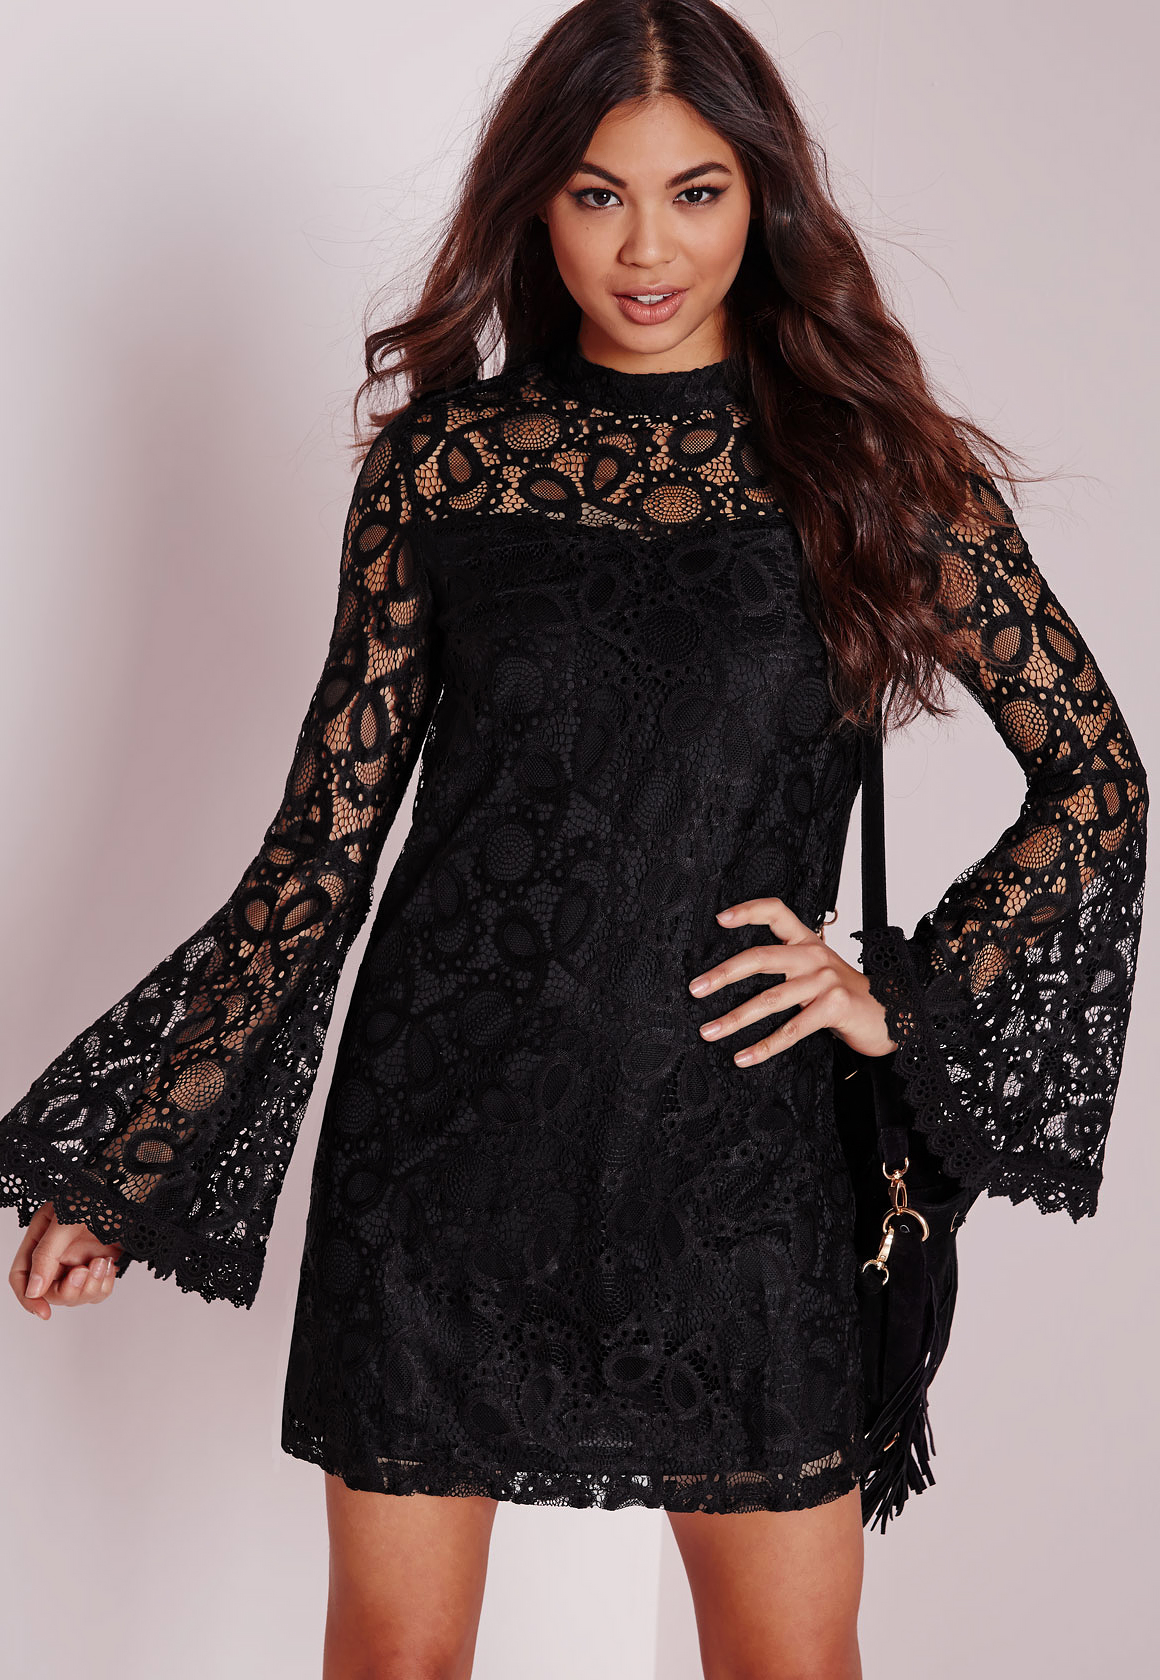 Black Lace Dresses With Sleeves